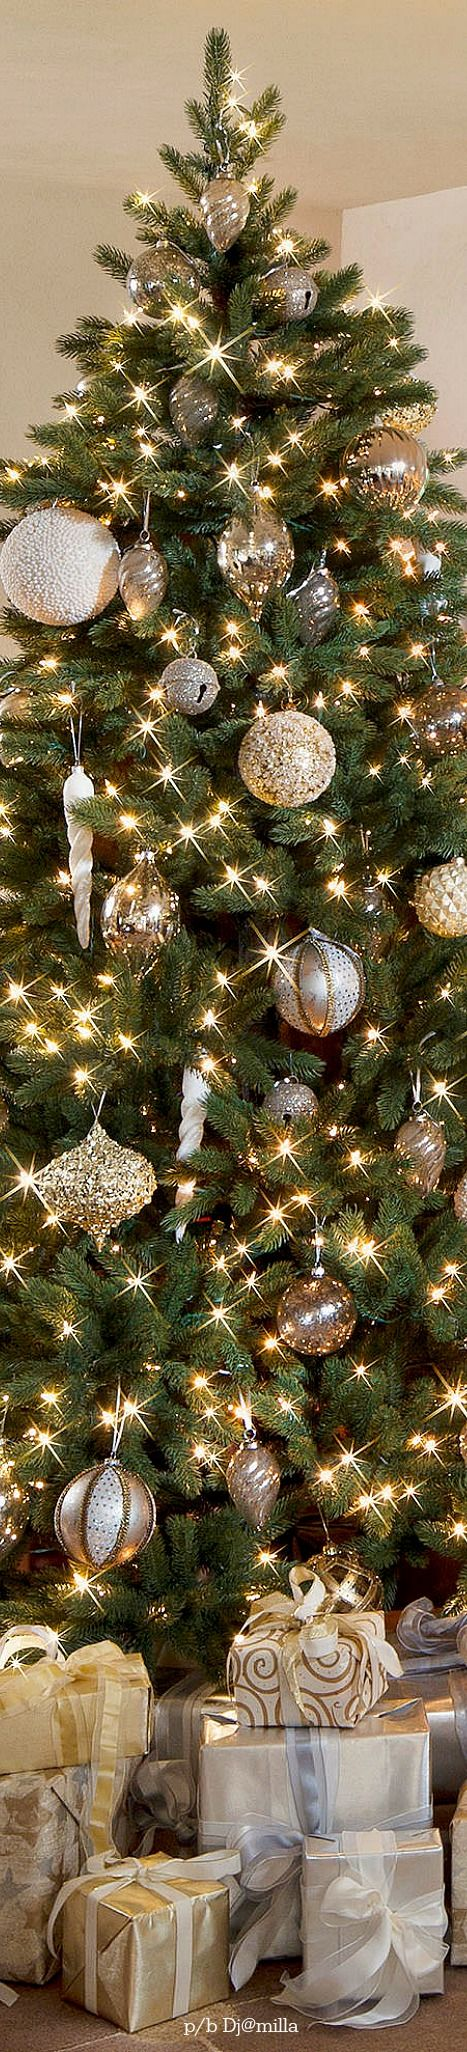 Christmas tree decorations silver and gold - Cosy Tree More Silver Christmas Treeelegant Christmasbeautiful Christmaswhite